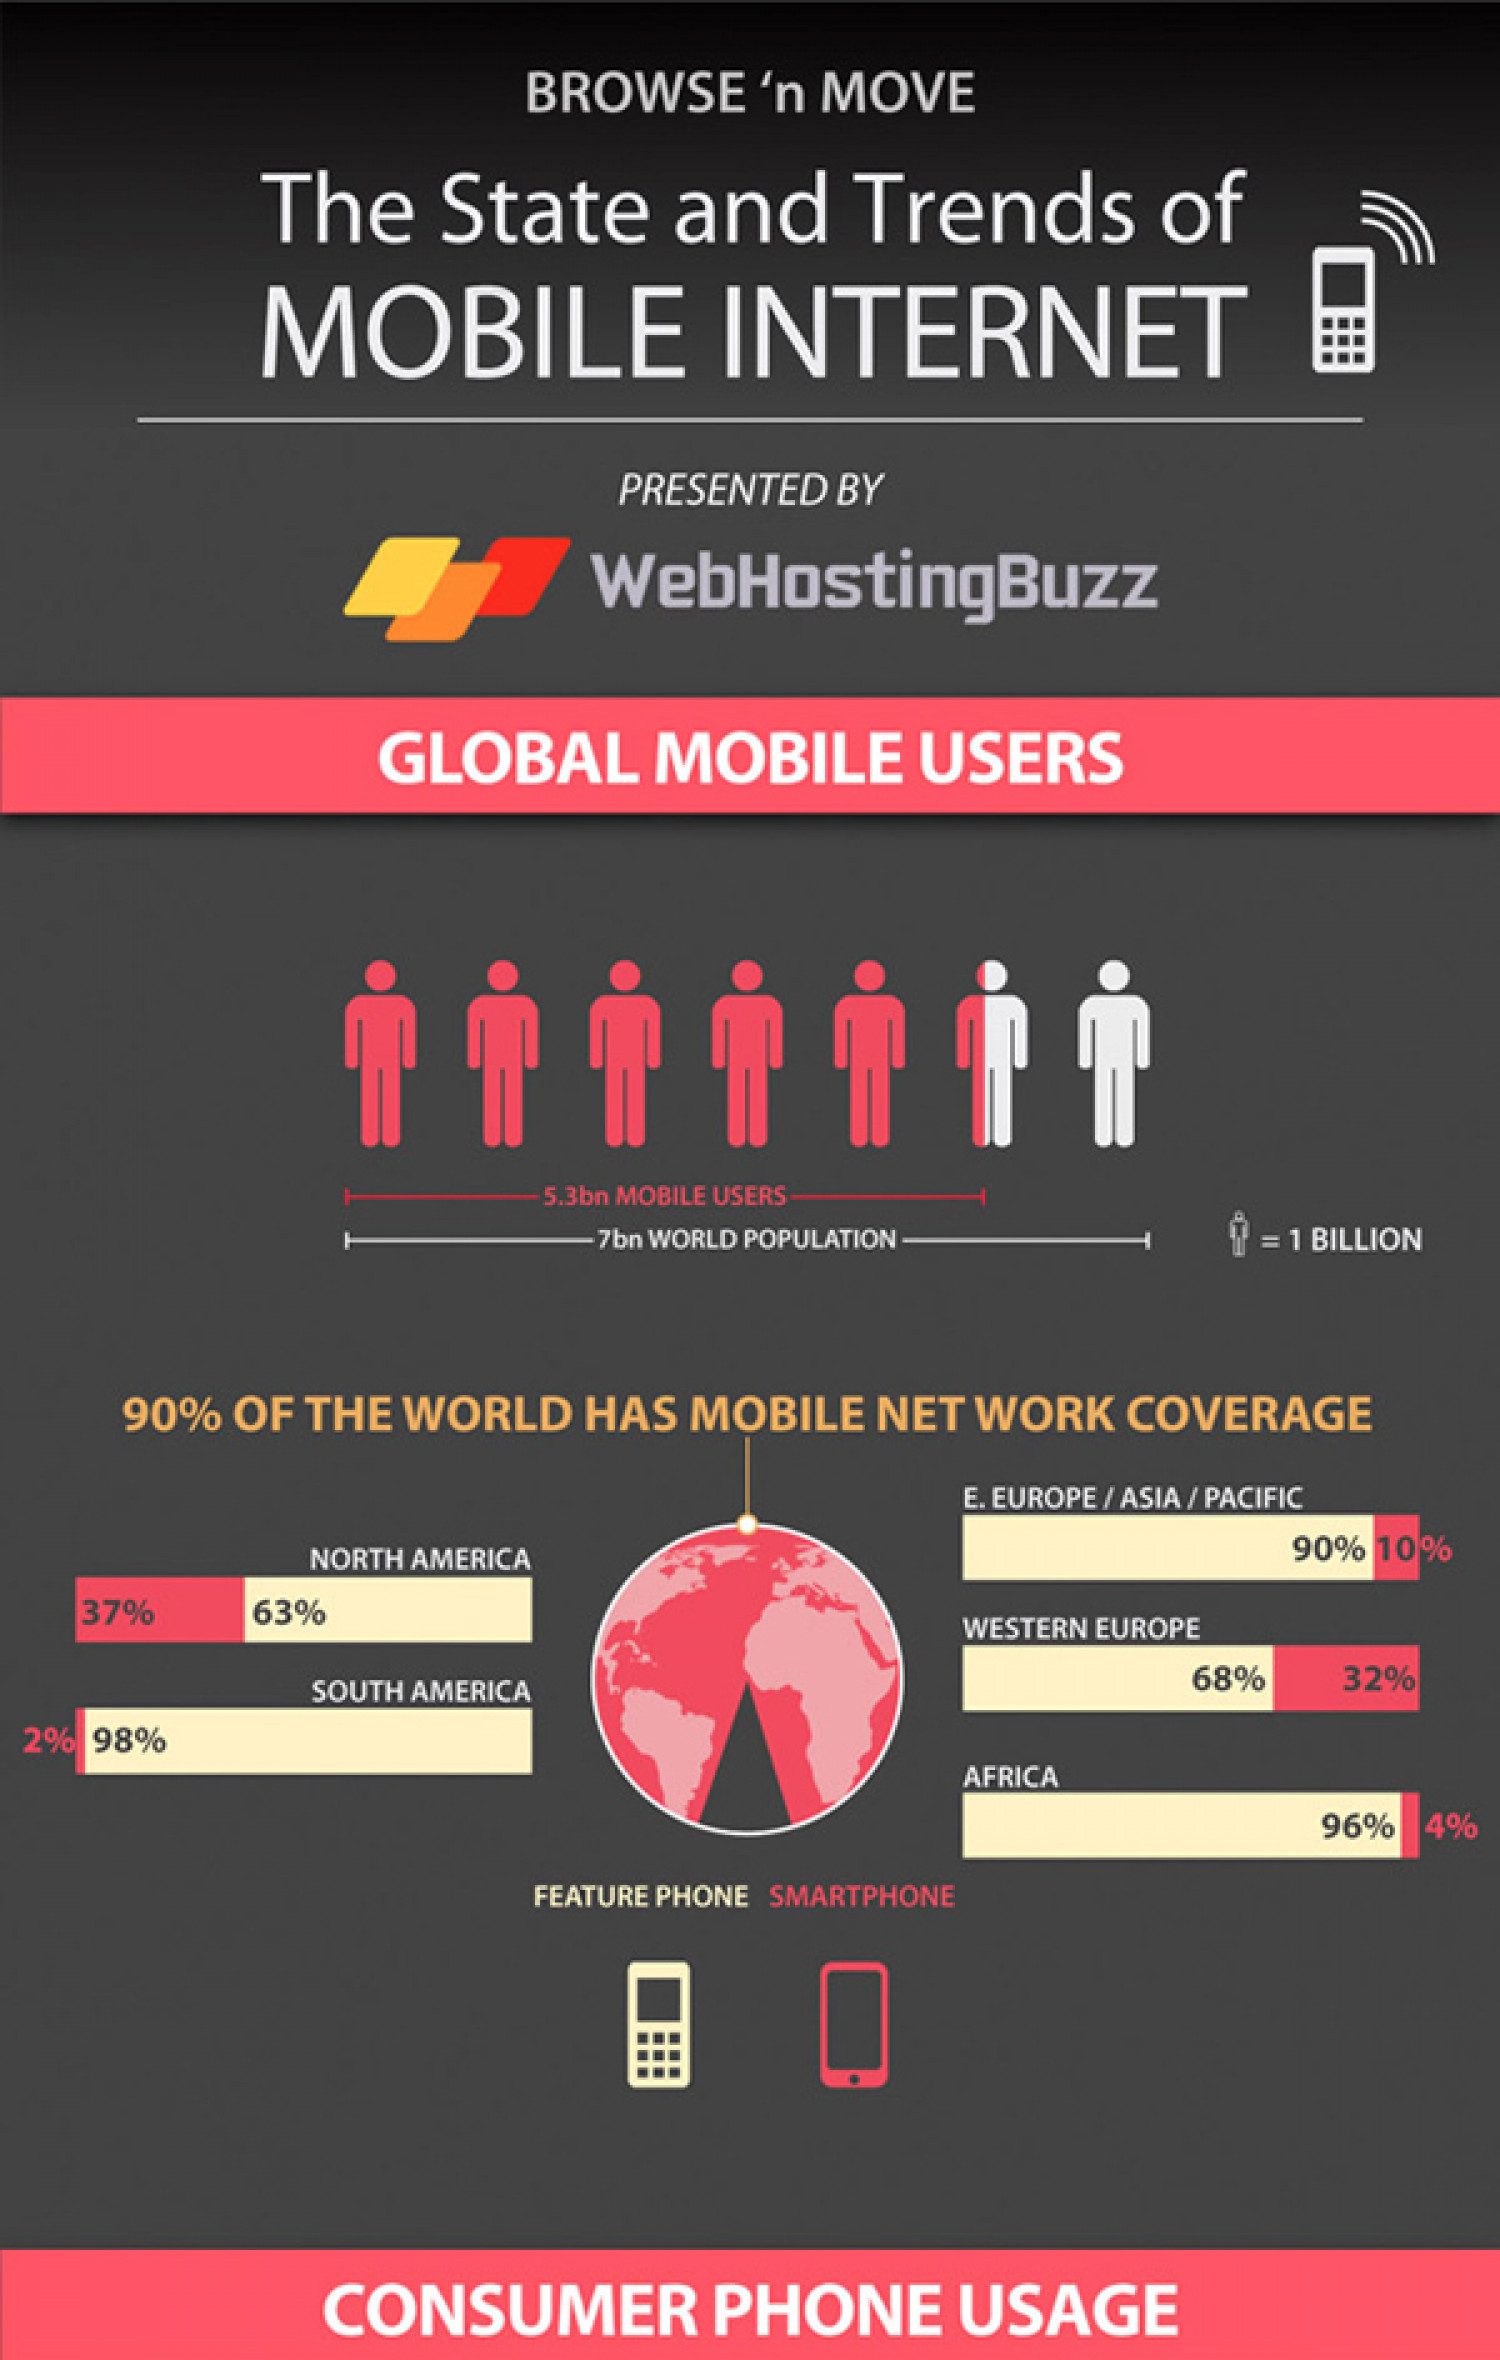 Browse 'n Move - The State and Trends of Mobile Internet Infographic